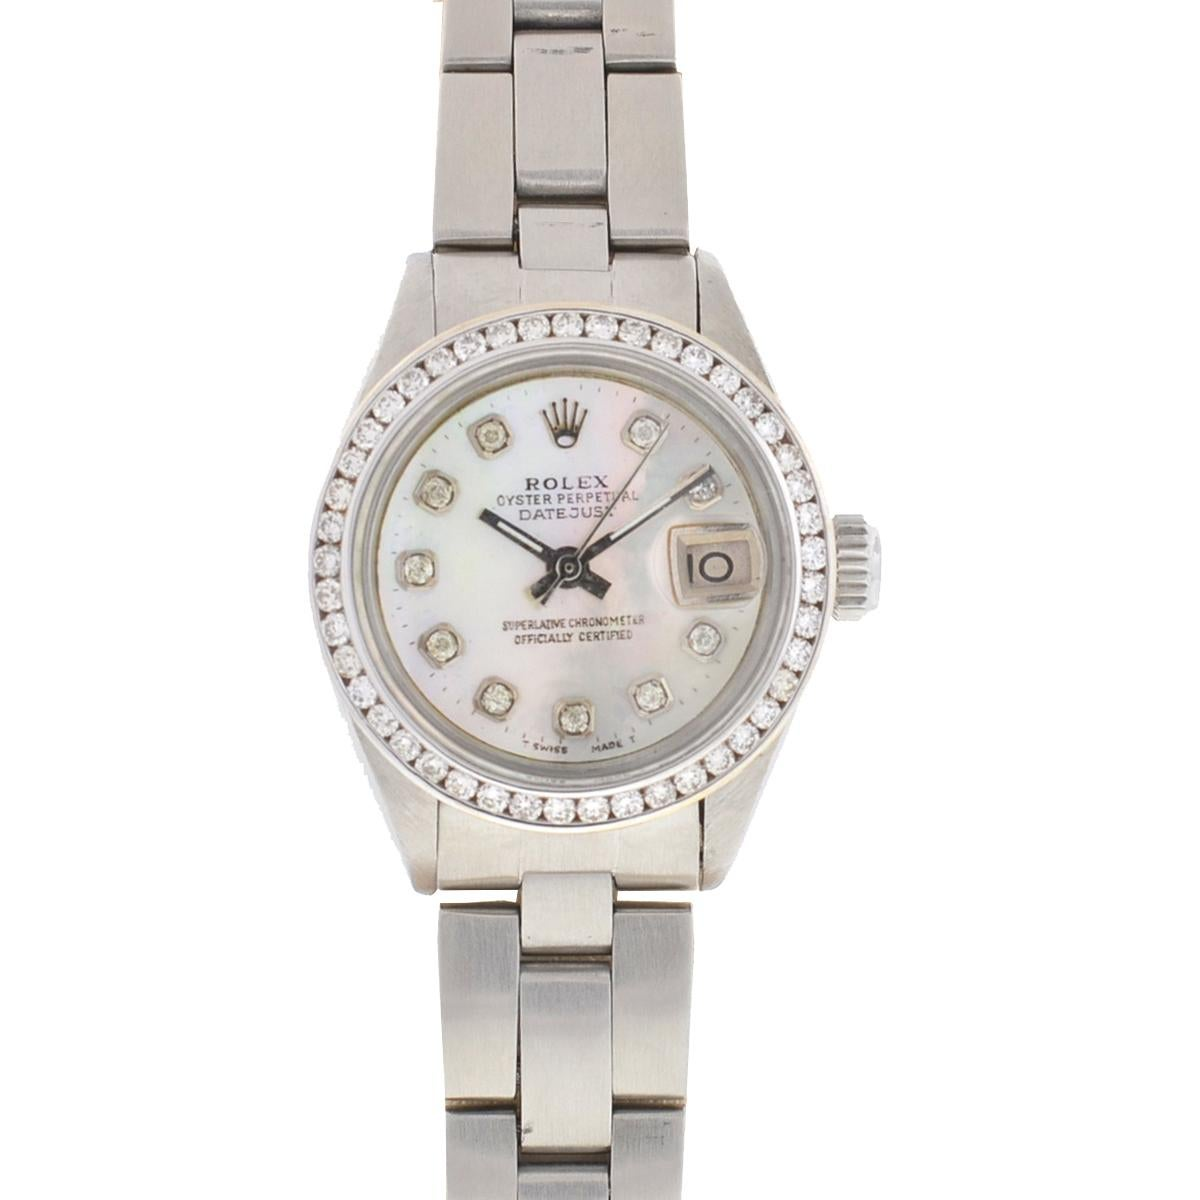 Rolex 6917 Datejust Aftermarket Mother of Pearl Diamond Dial and Bezel Watch